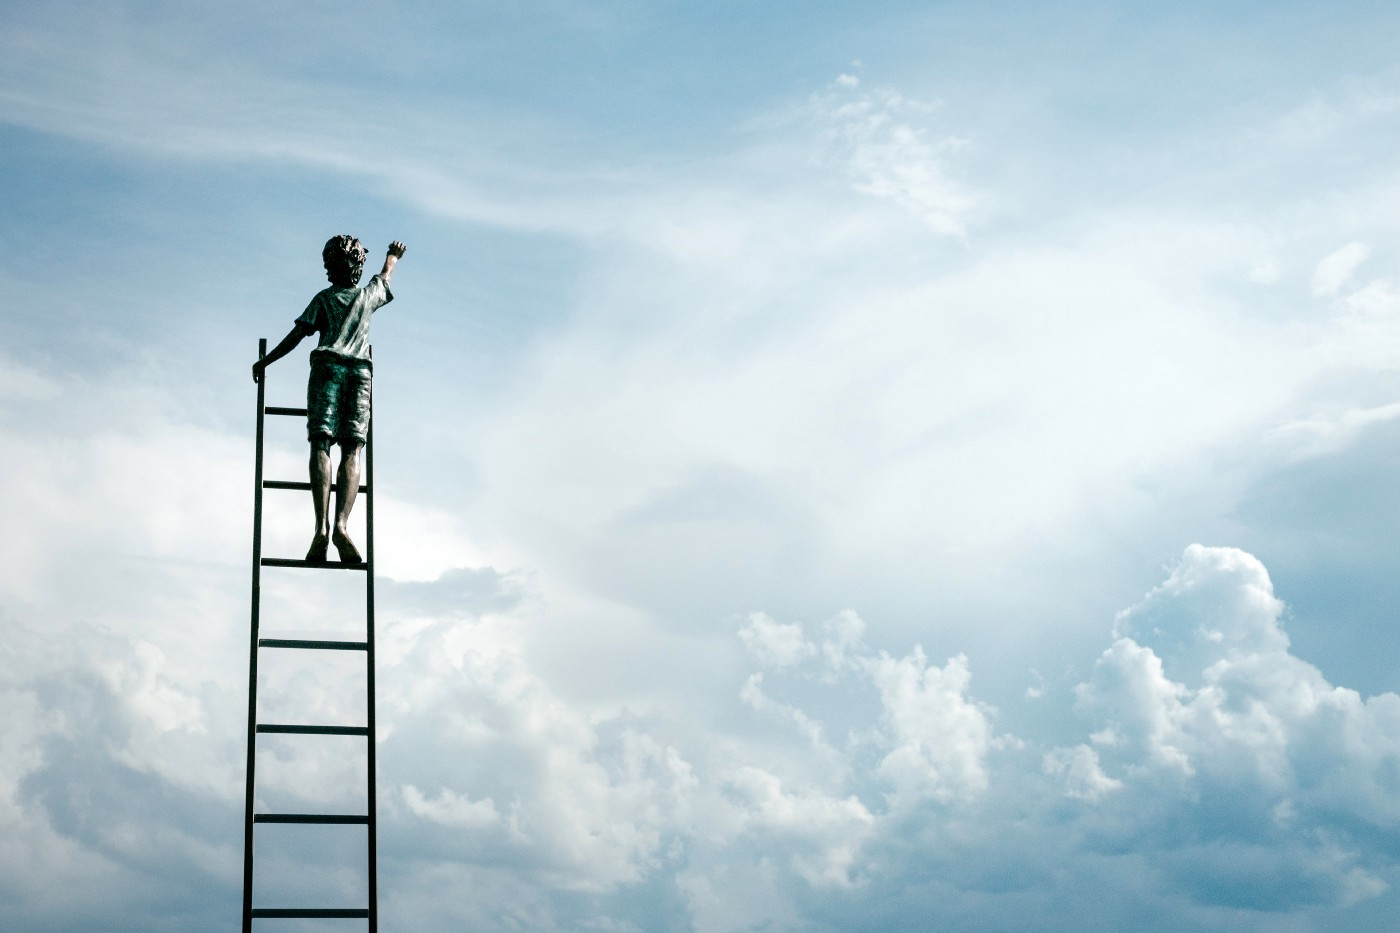 Boy on a ladder, reaching into the clouds